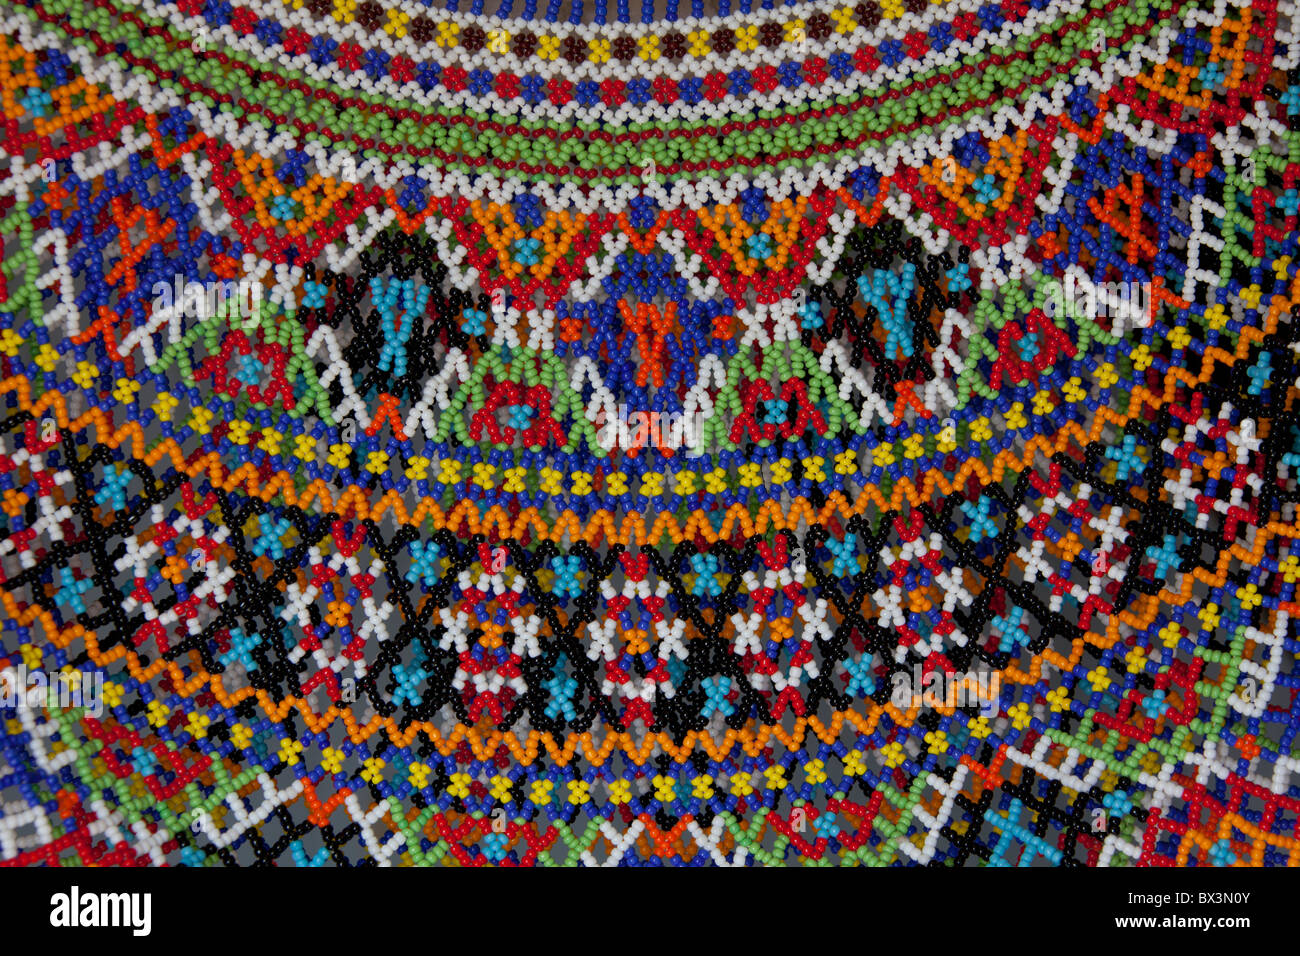 Detail of traditional costume made of beads at the Uummannaq Museum, North-Greenland, Greenland - Stock Image